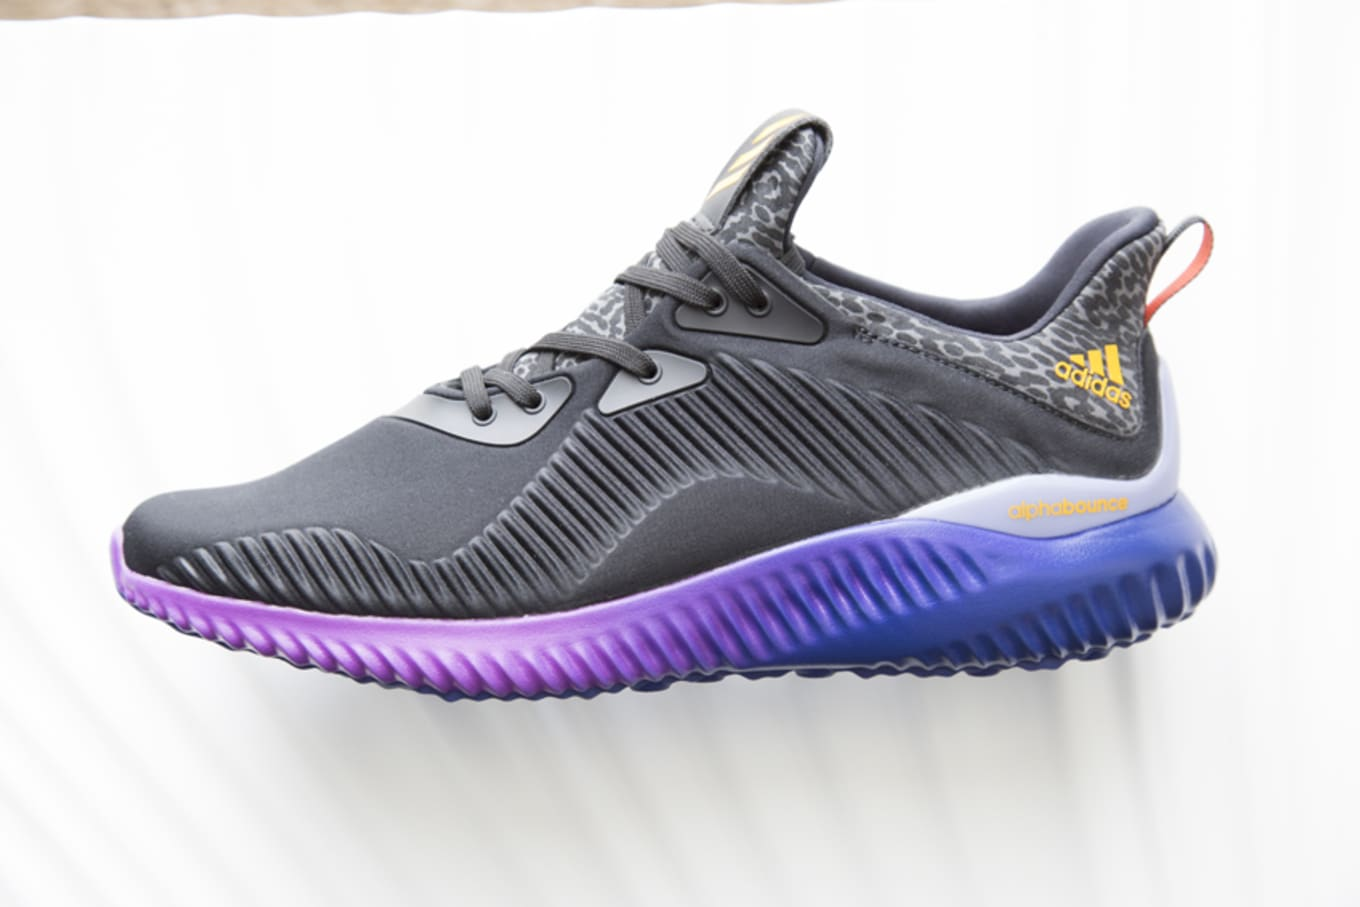 e4b261fcc7008 6 Things You Need to Know About the adidas AlphaBOUNCE